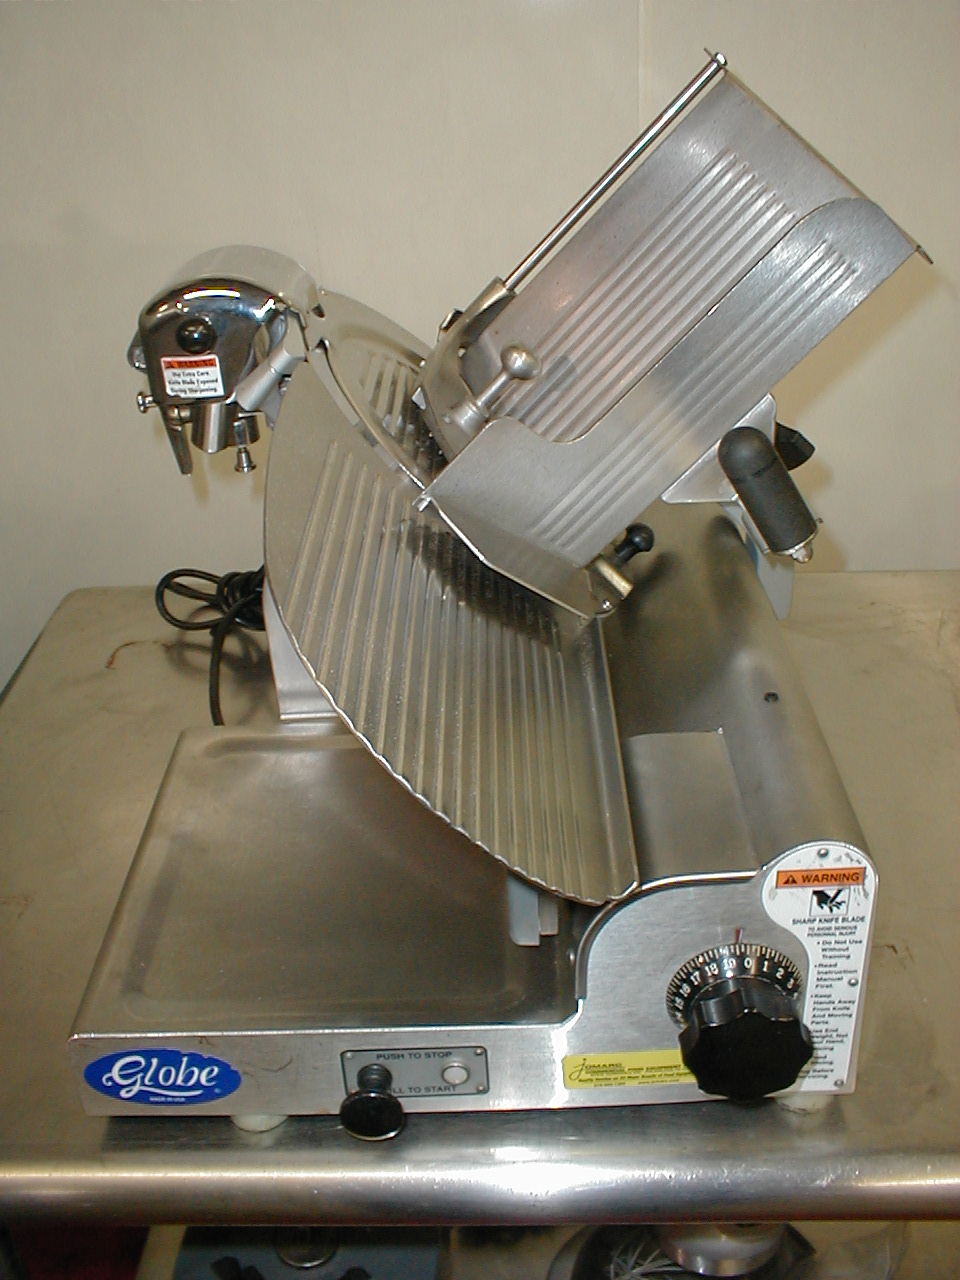 Real nice used globe slicer late model 3500 all stainless steel